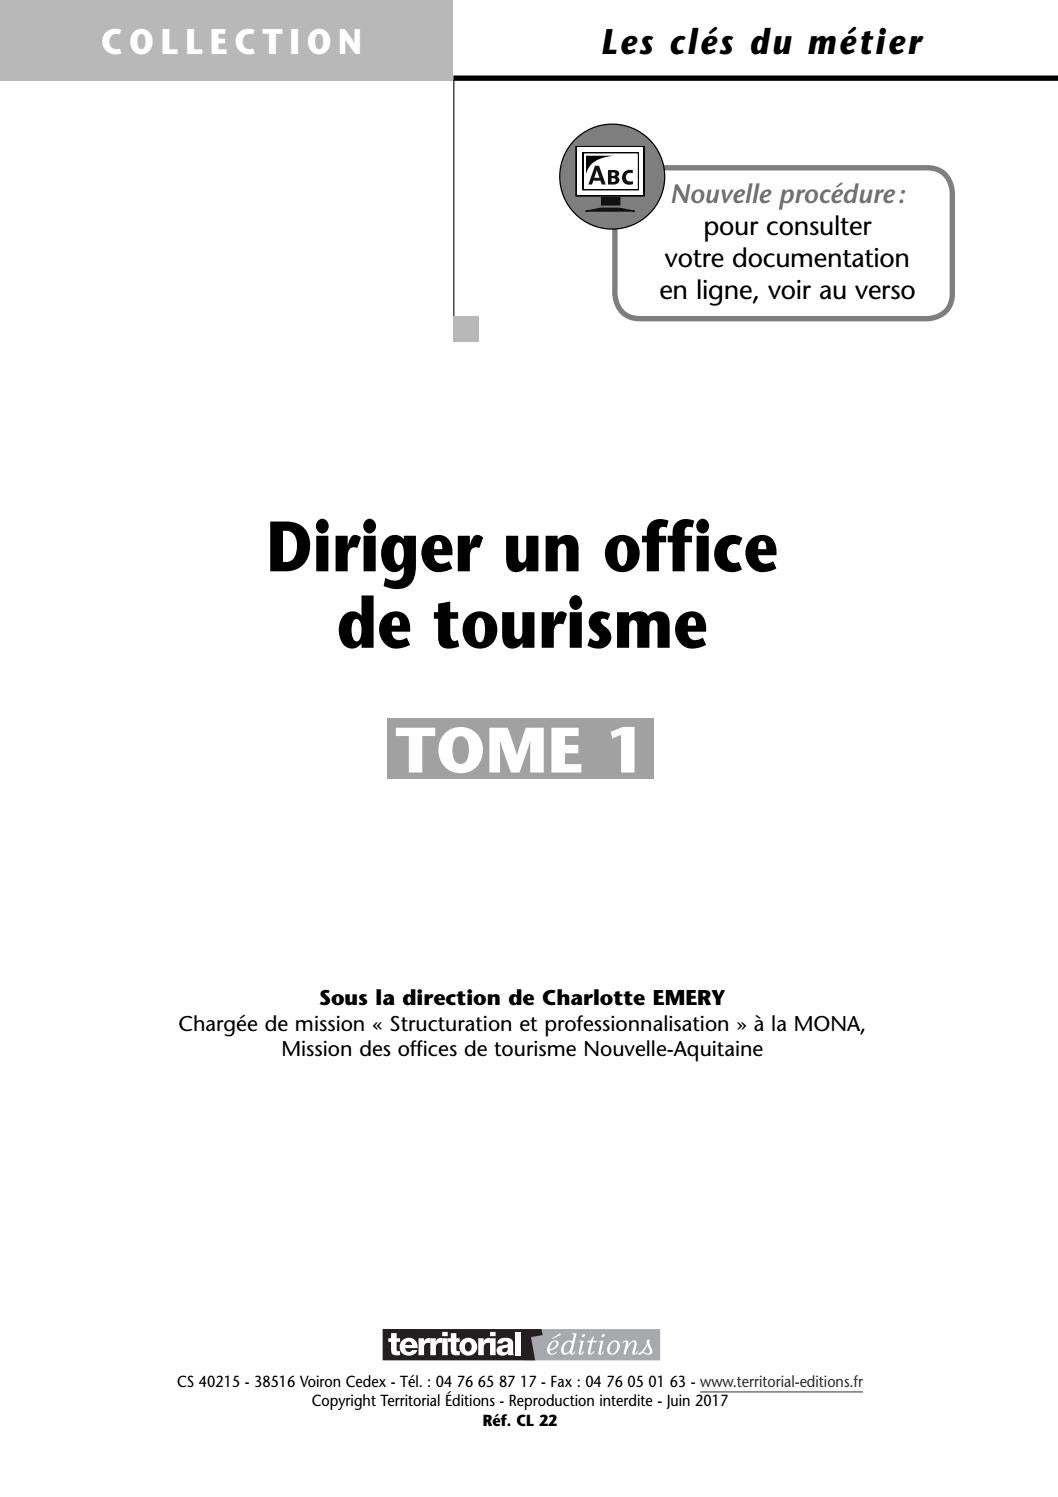 Diriger un office de tourisme by infopro digital issuu - Office de tourisme voiron ...